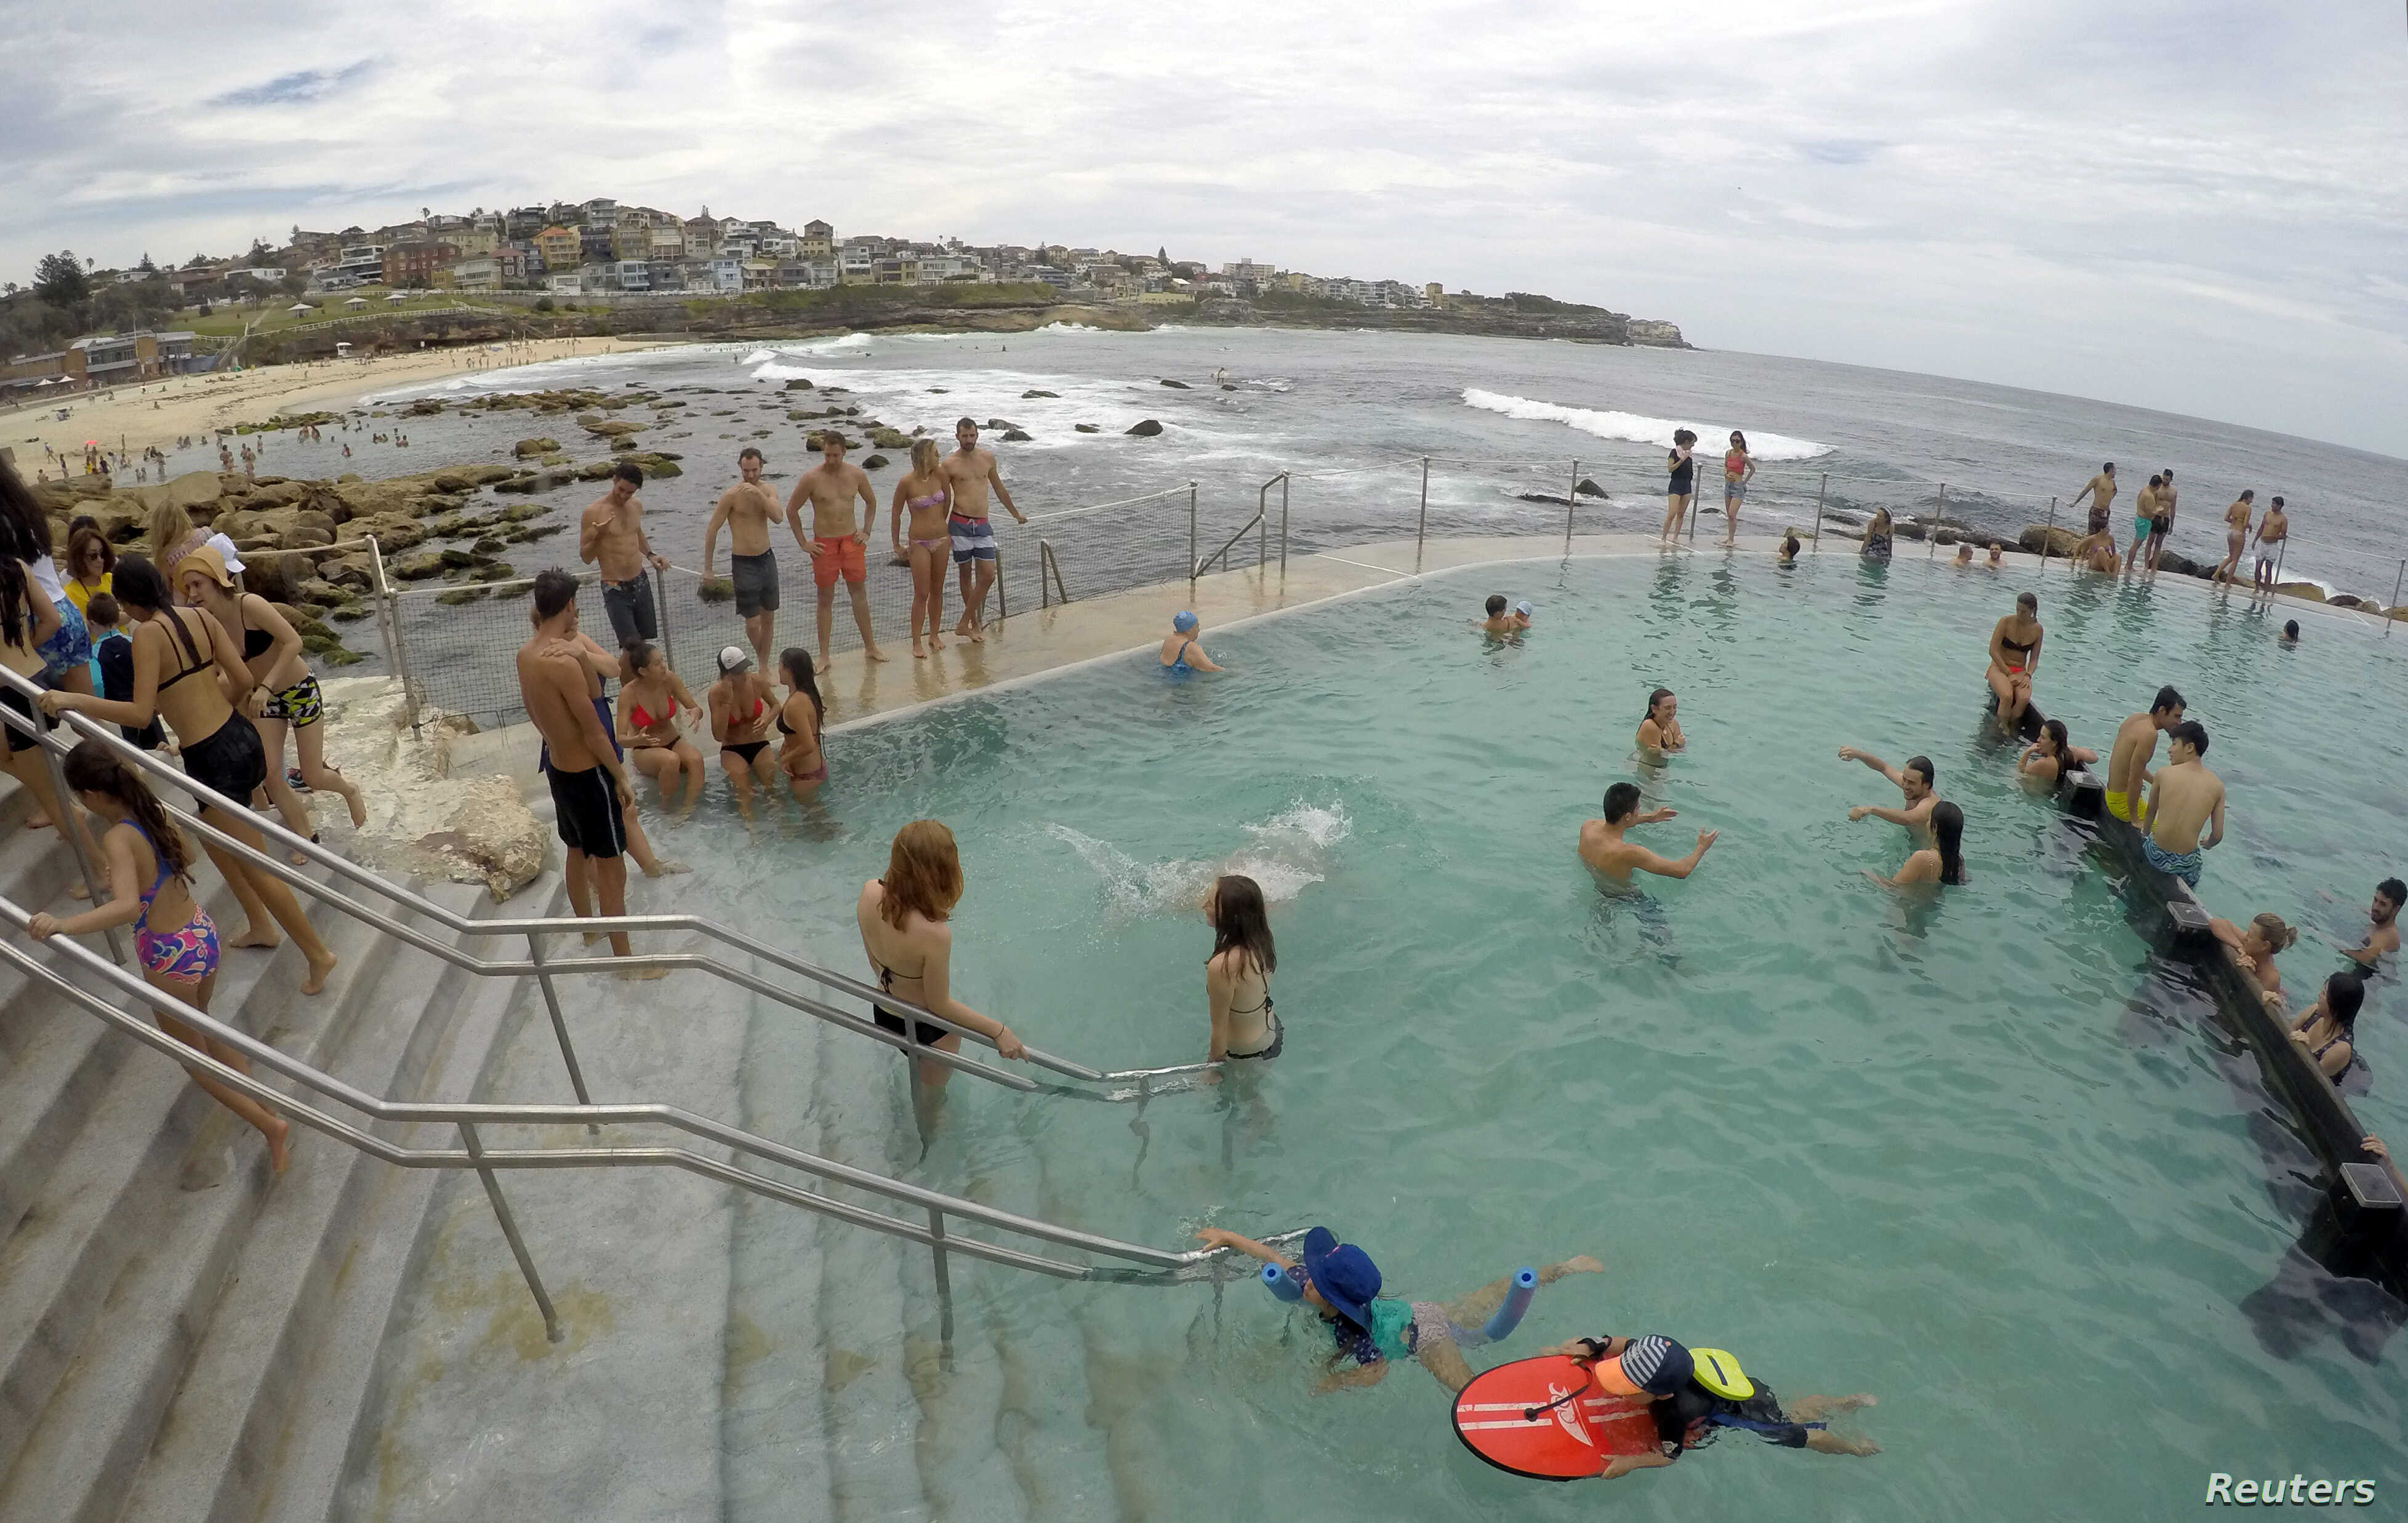 Swimmers cool off in a salt water ocean pool at Sydney's beachside suburb of Bronte, Dec. 14, 2016, to take relief from an early summer heat wave as the temperature in Sydney reached 37.1 degrees Celsius (100 Fahrenheit), according to the Australia's